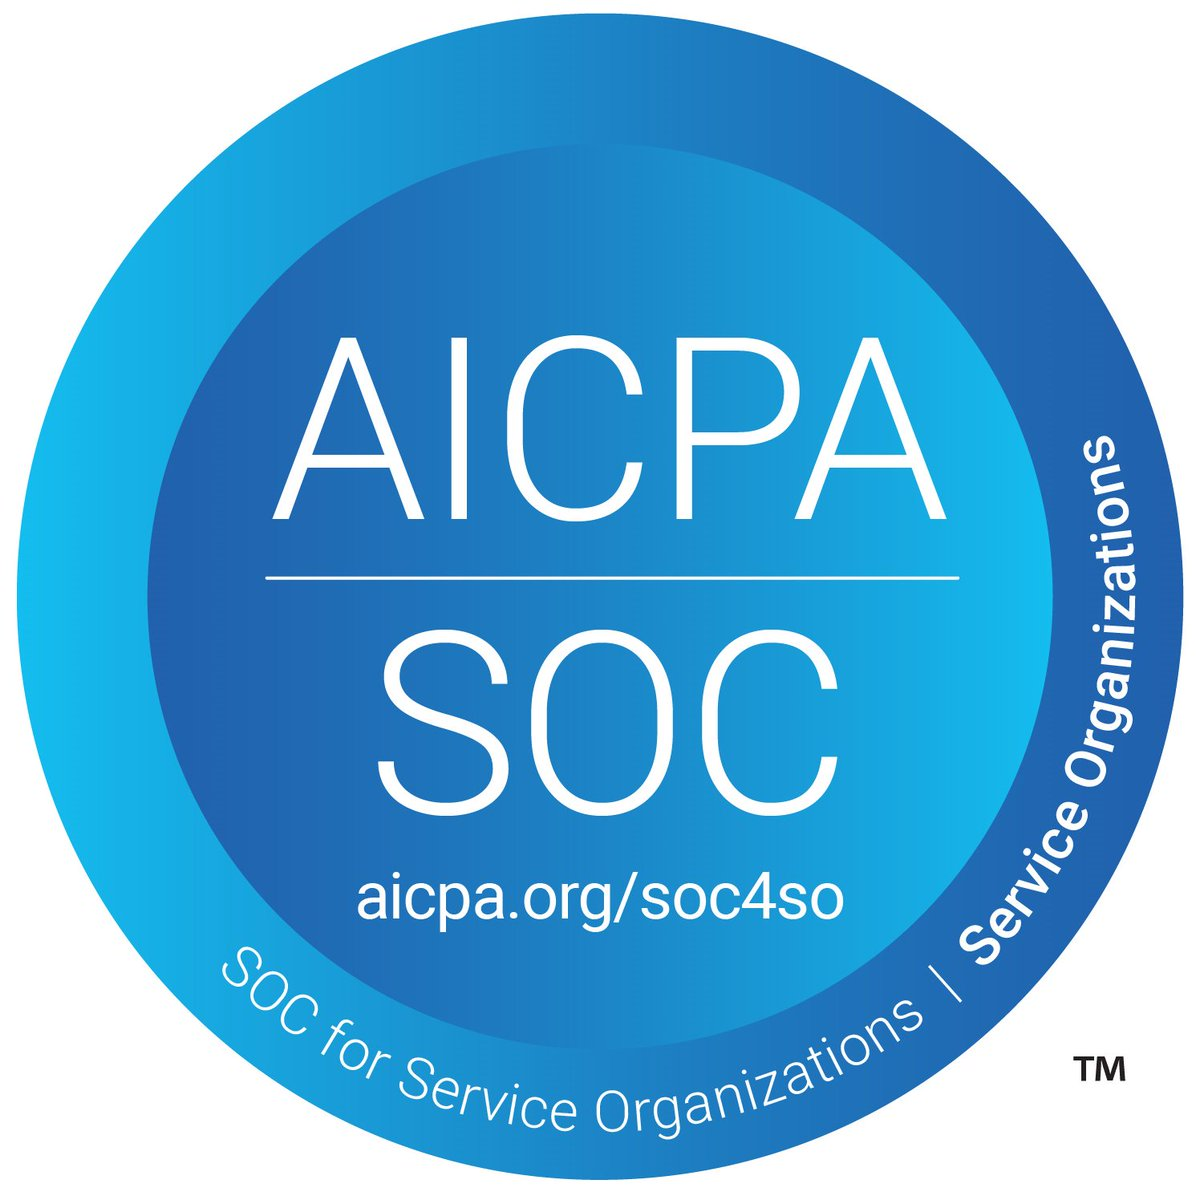 We take security seriously at Demand Driven Technologies. As part of our ongoing commitment to provide best-in-class solutions, we are now SOC 2 compliant. Rest assured your data is protected. https://t.co/AsskZr0VSq #AICPA #SOC https://t.co/WED1KbIKim